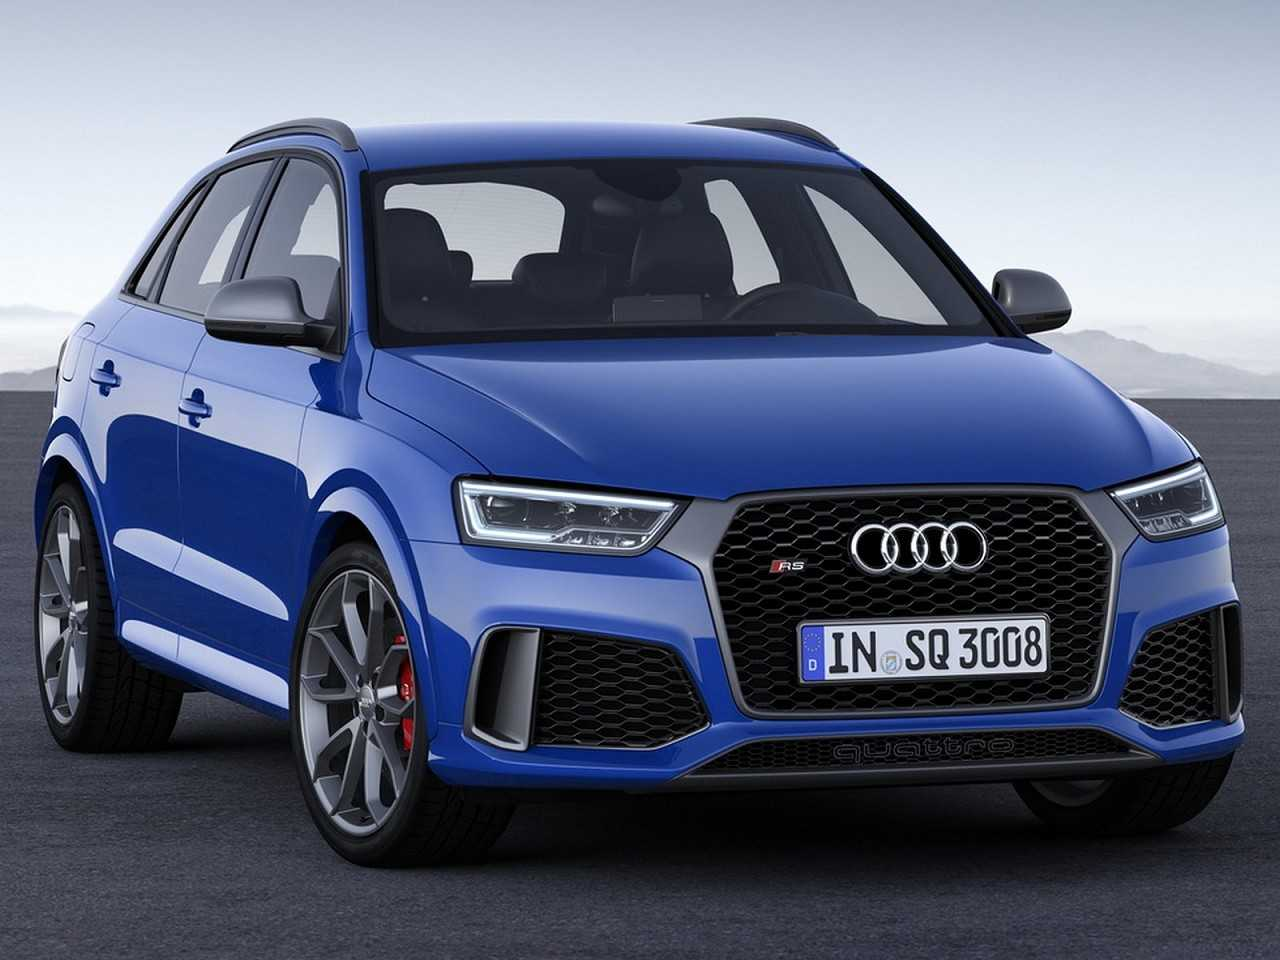 Audi RS Q3 2016 - ângulo frontal